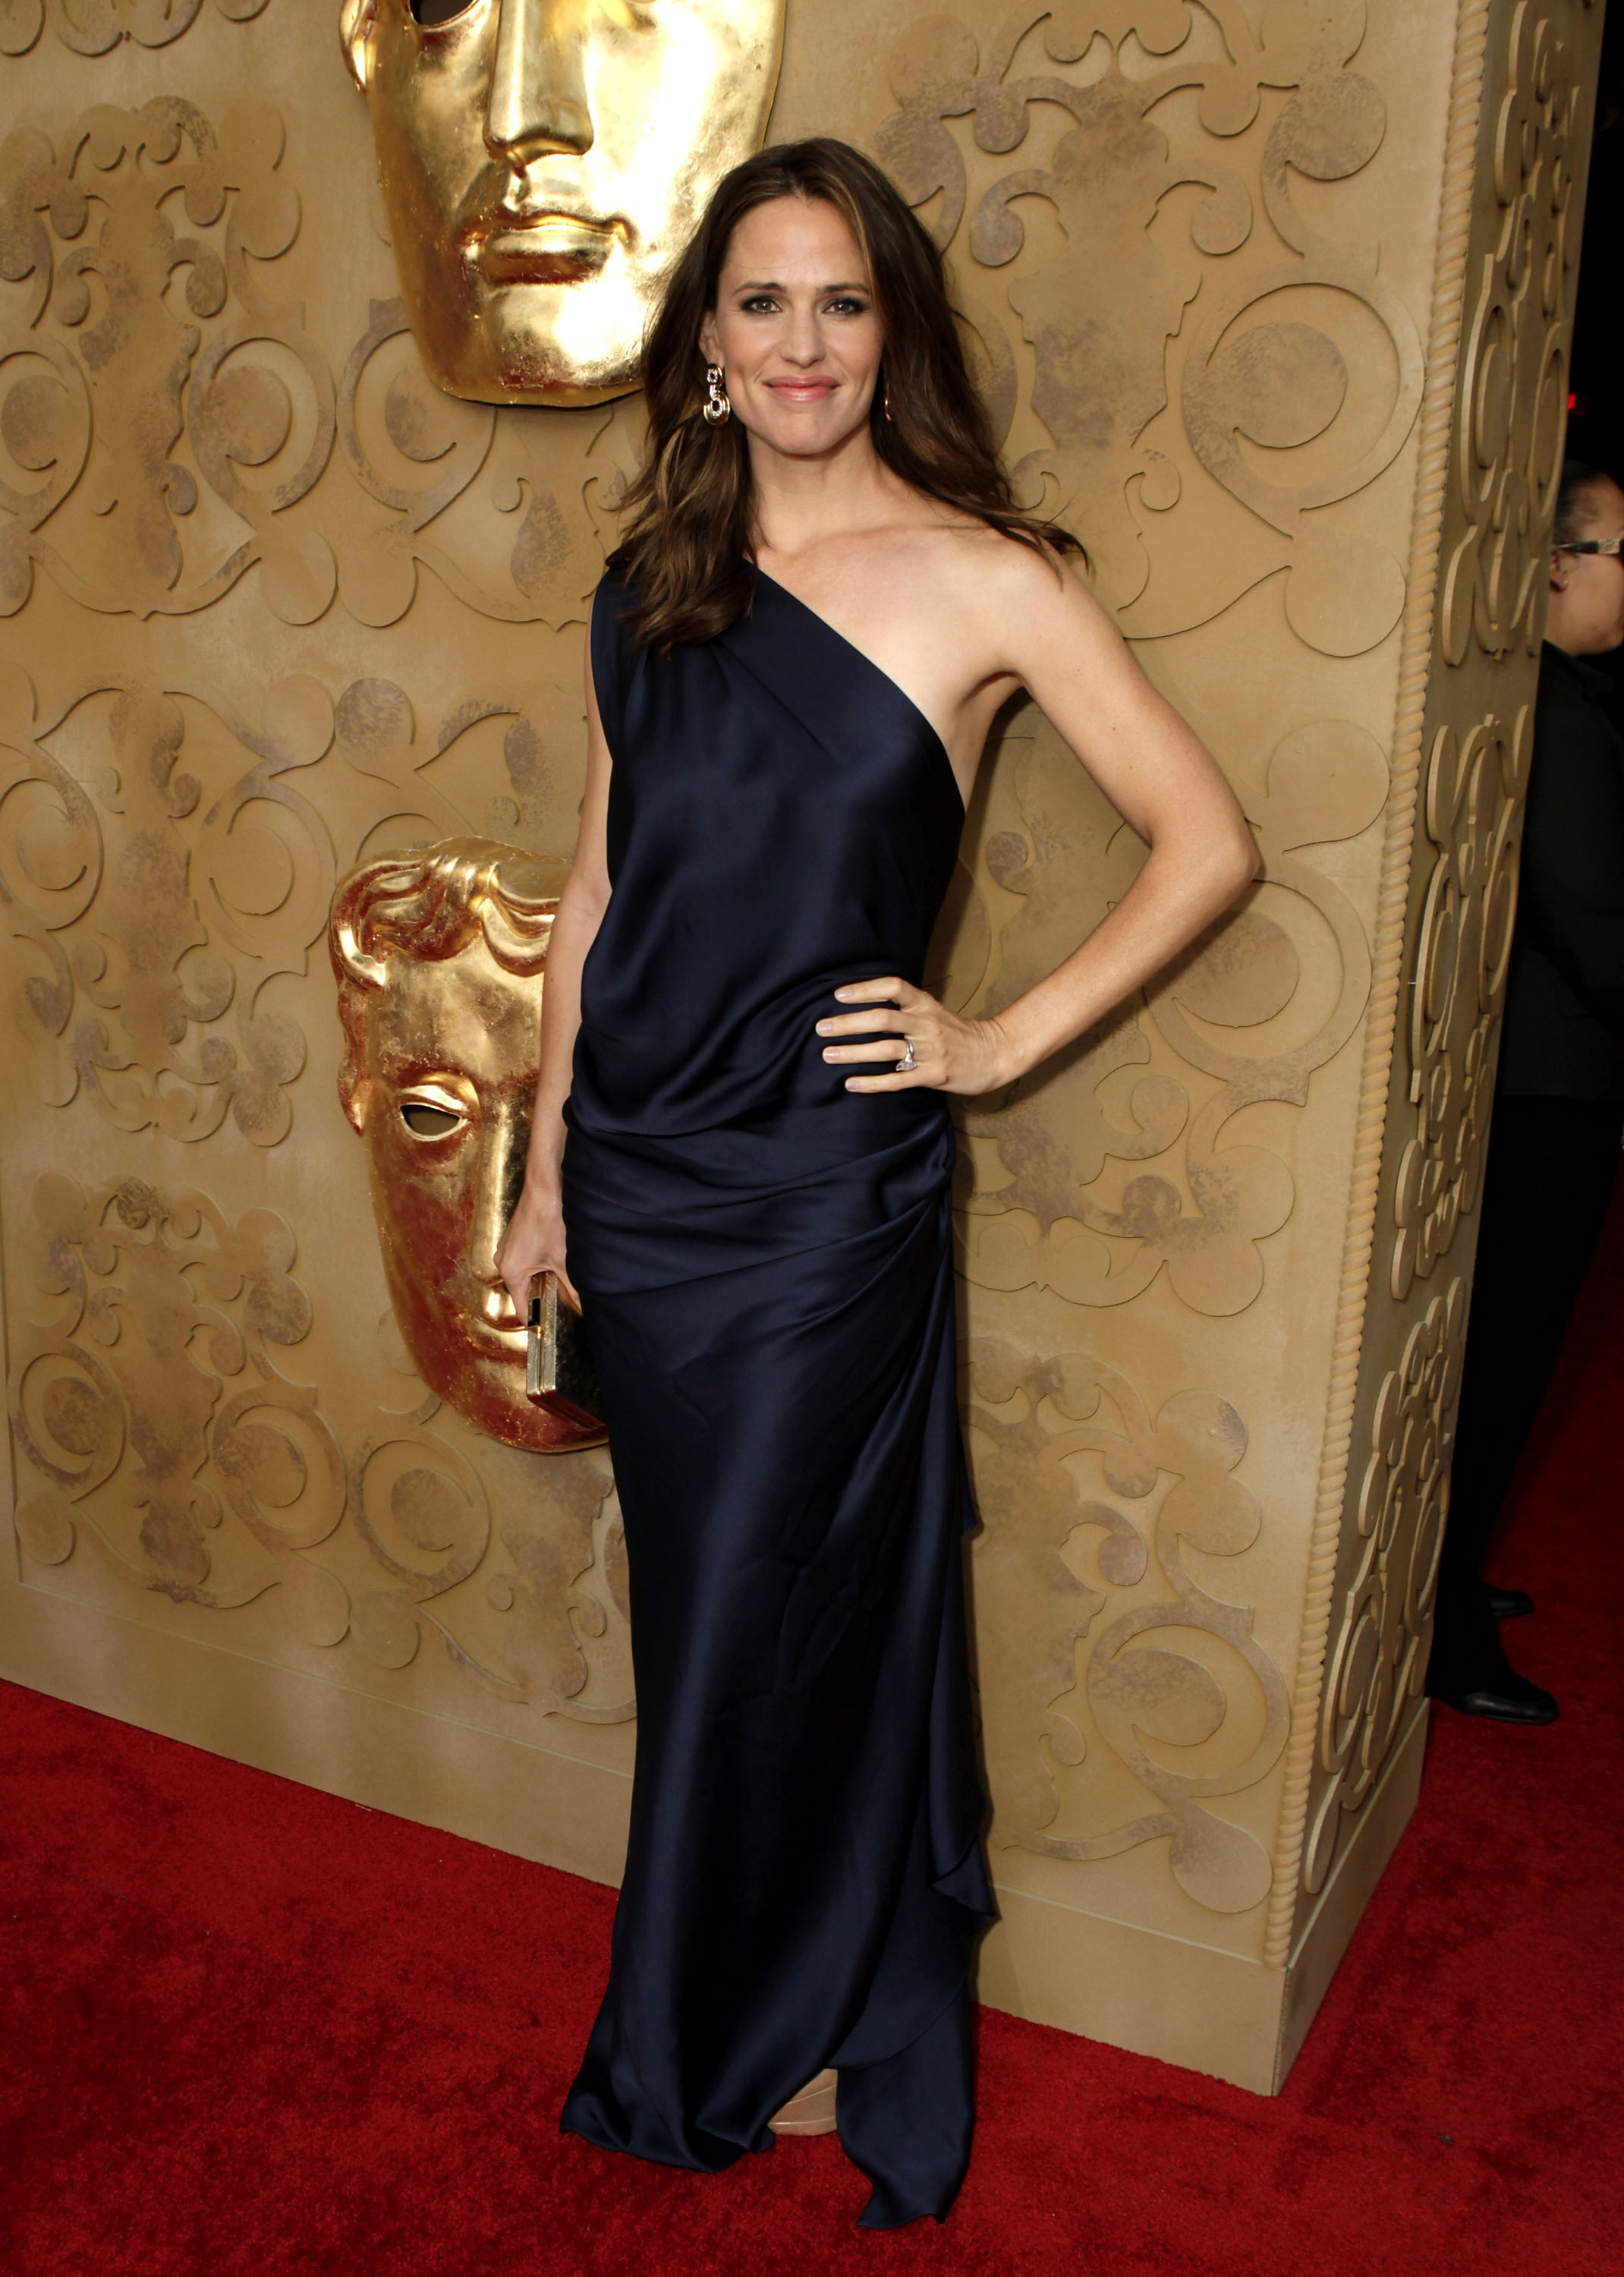 Jennifer Garner in a blue gown at the BAFTA Brits to Watch event in LA.